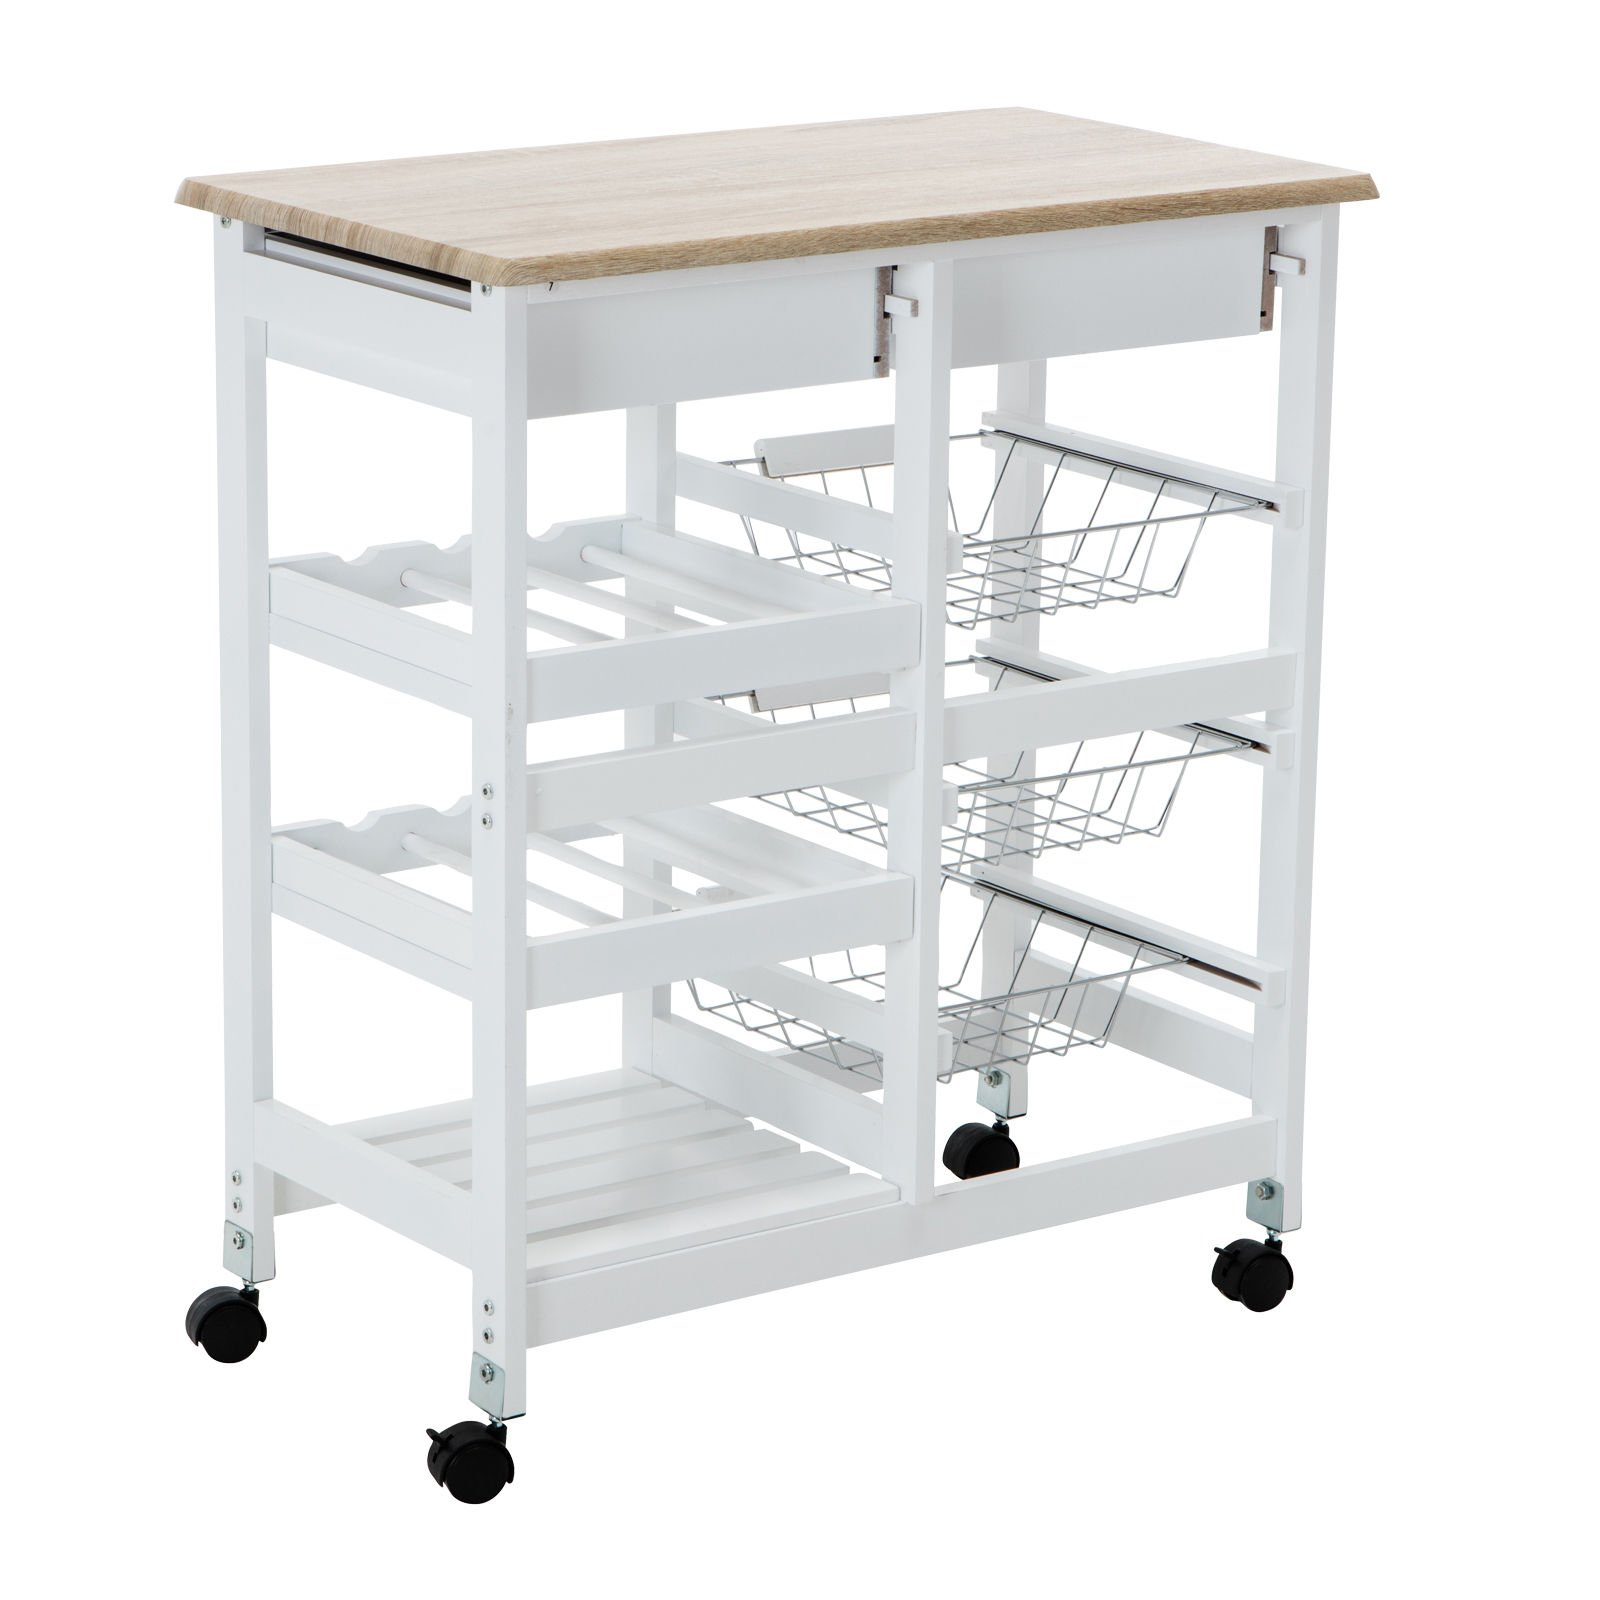 Portable Oak Kitchen Island Cart Trolley Rolling Storage Dining Table 2 Drawers By Allgoodsdelight365